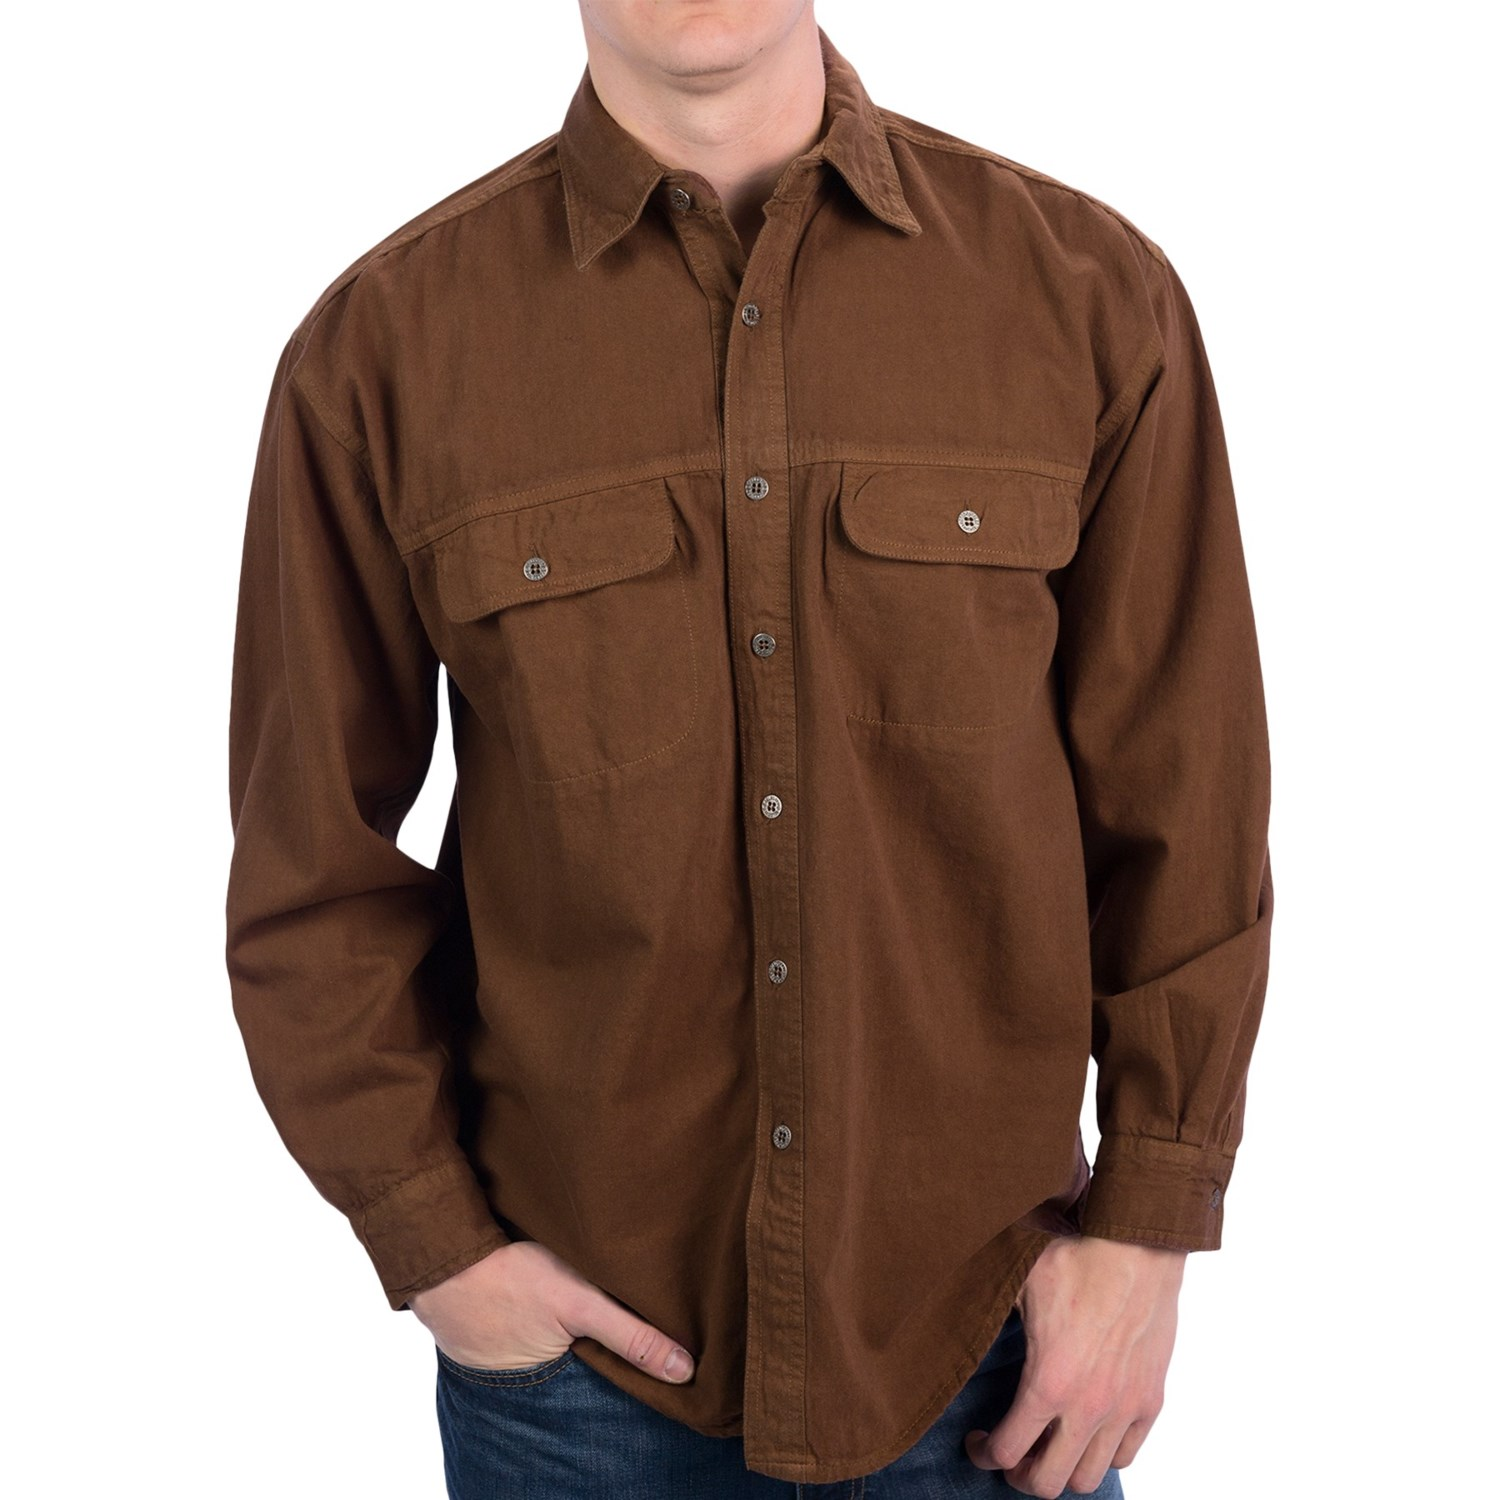 Basic Button Up Shirt For Men 6801f Save 60